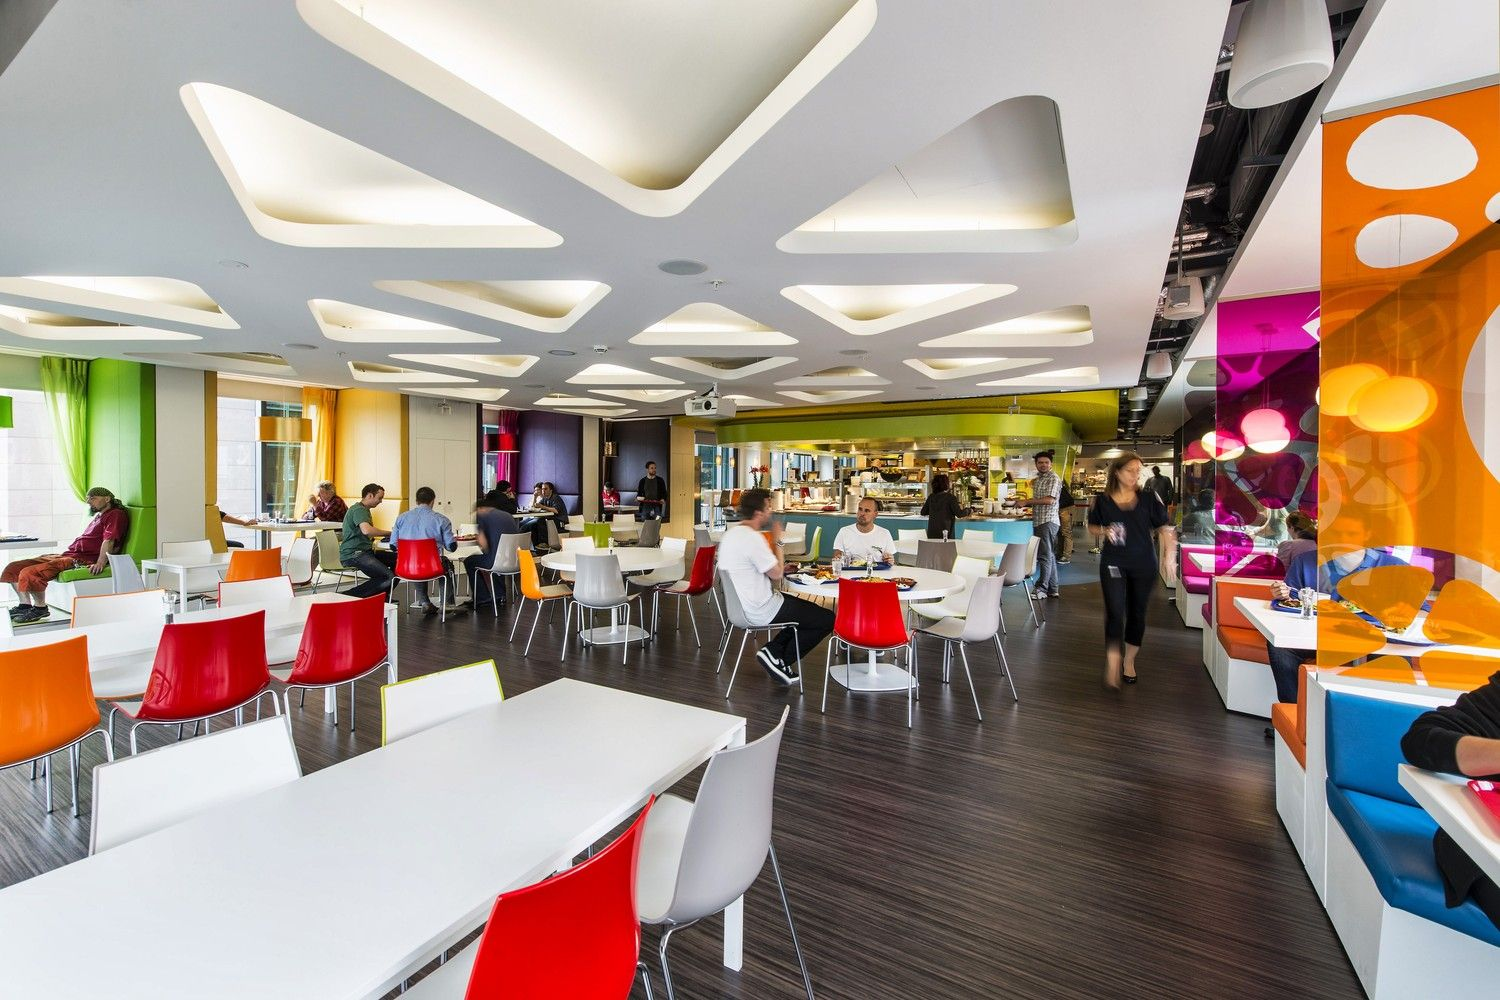 Google office cafeteria Small Office Image Result For Google Cafeteria Pinterest Image Result For Google Cafeteria Capstone Inspiration Office